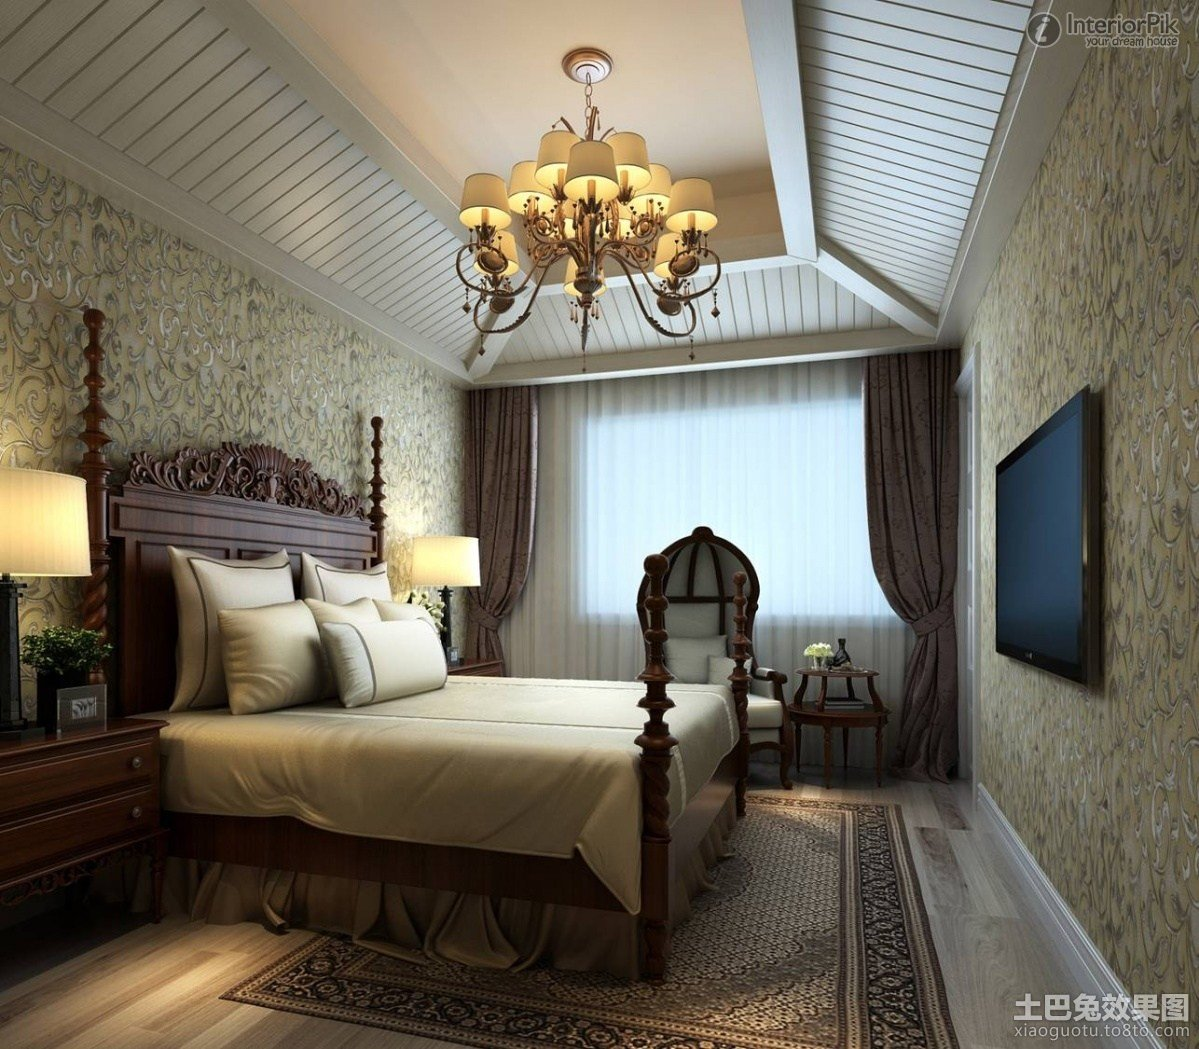 Best Top 7 Ideas To Make Your Bedroom Romantic Romantical Aid With Pictures